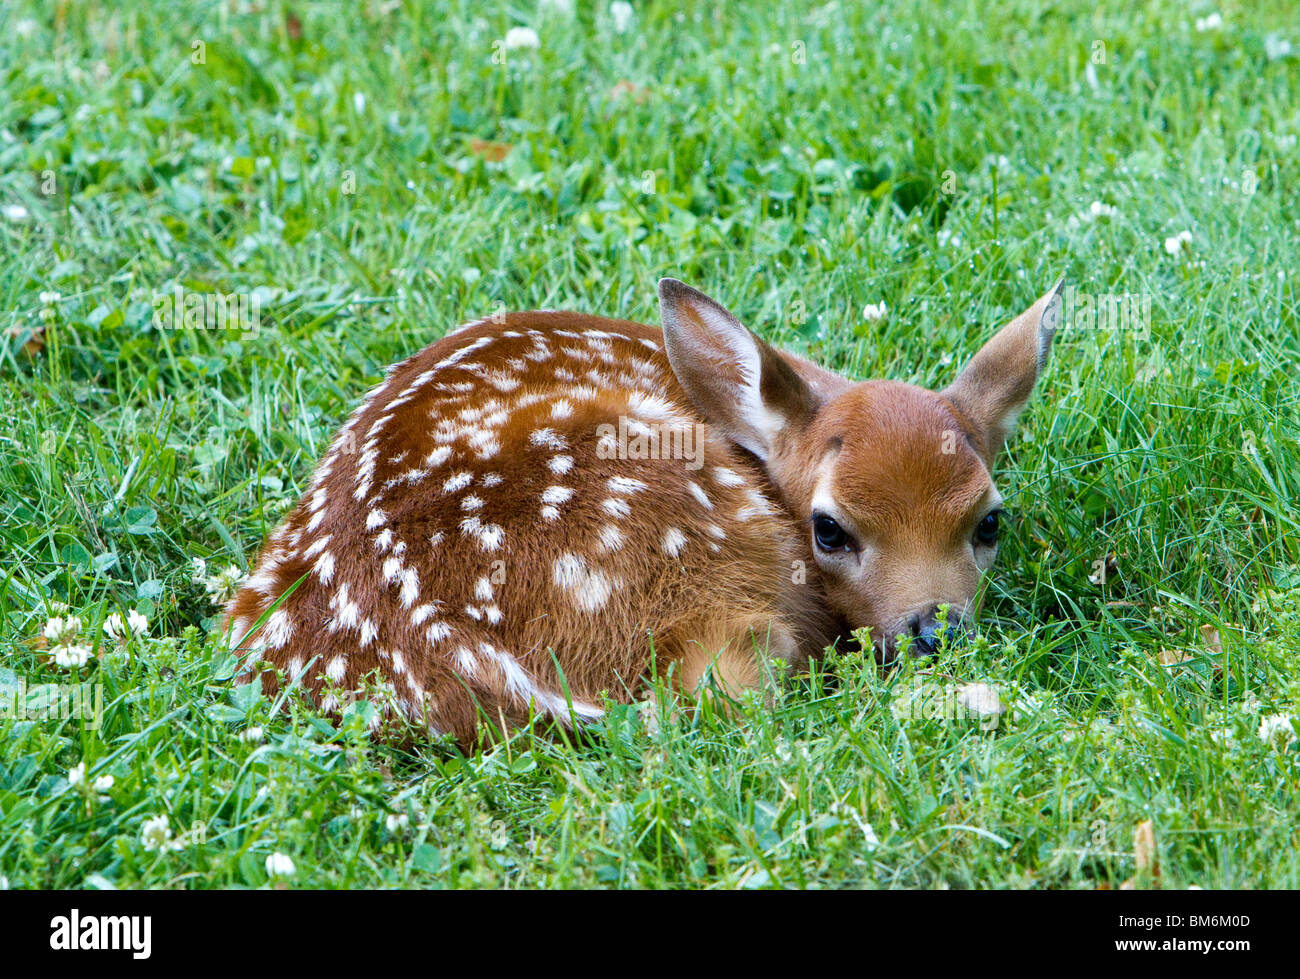 A Fawn A Baby Deer Left In The Open The Fawn Is Laying